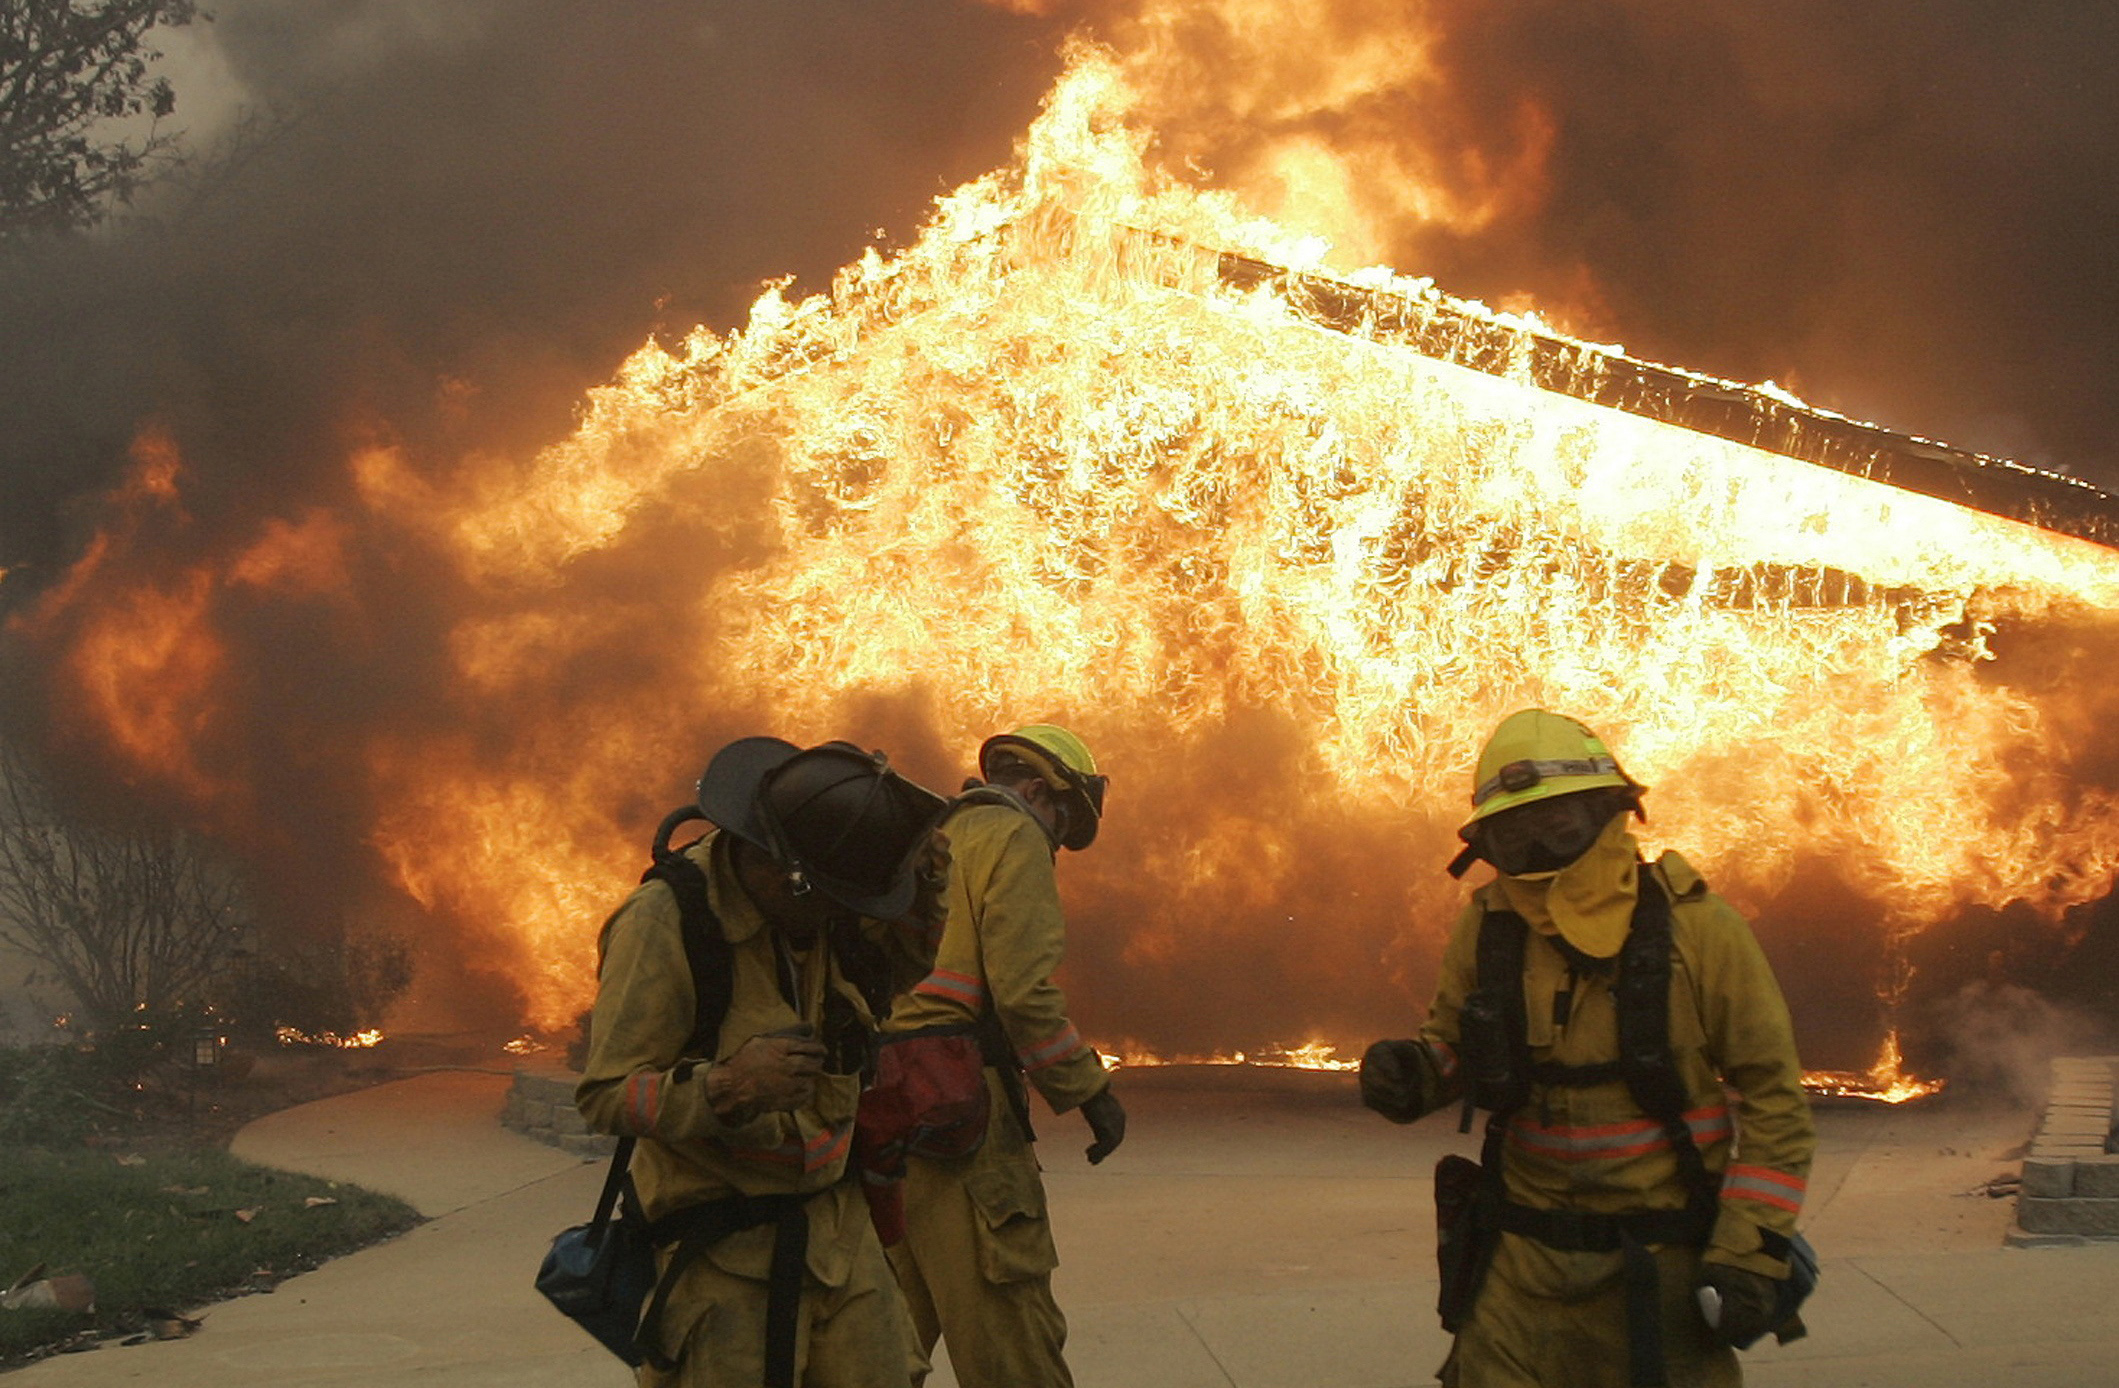 SDG&E Makes Assurances That Ratepayers Won't Somehow Get Stuck With 2007 Wildfire Bills